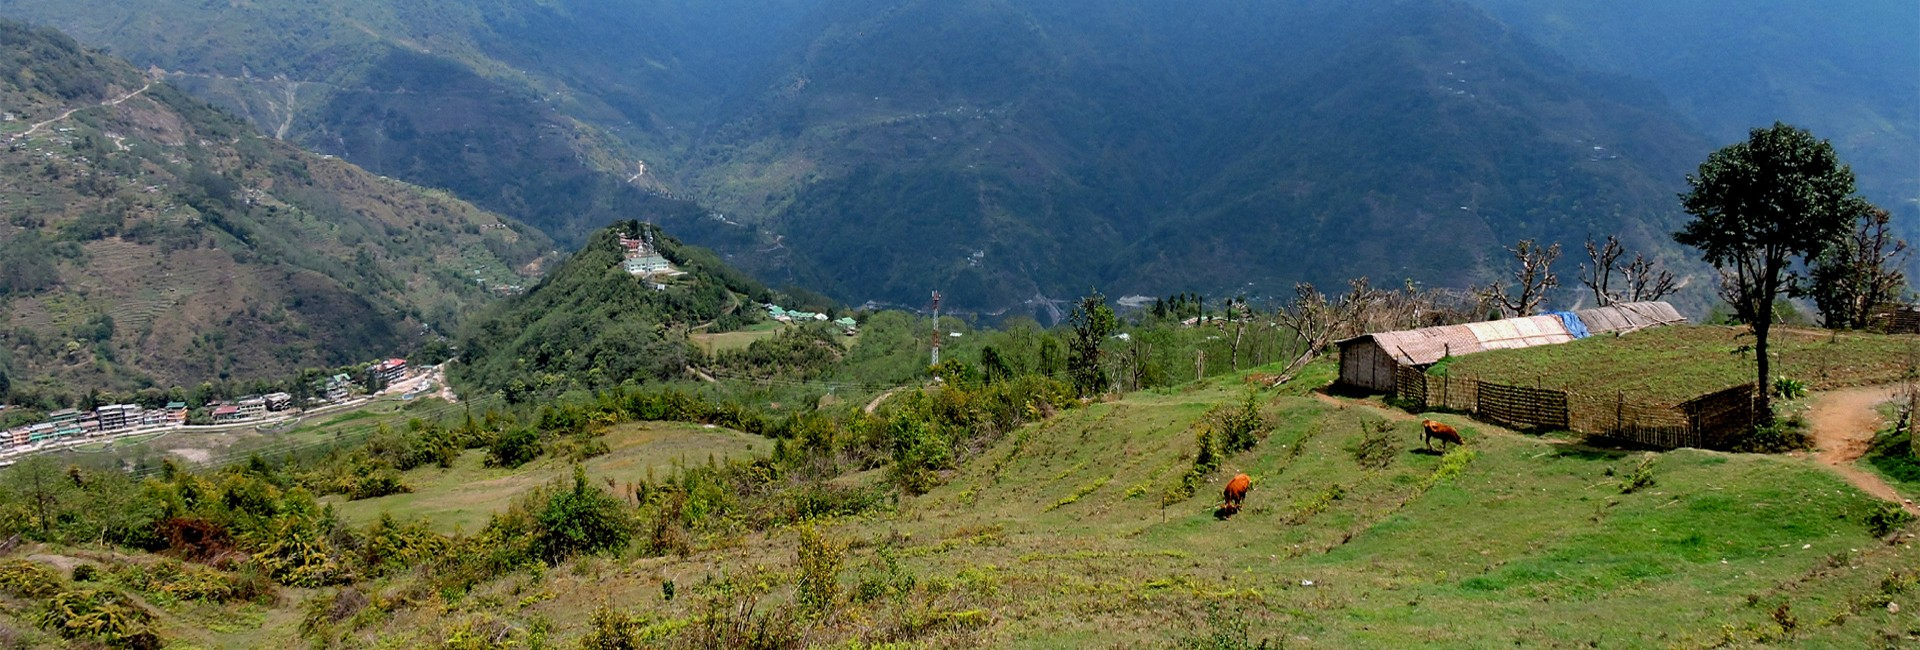 Kaluk sikkim a place known for peace and serenity